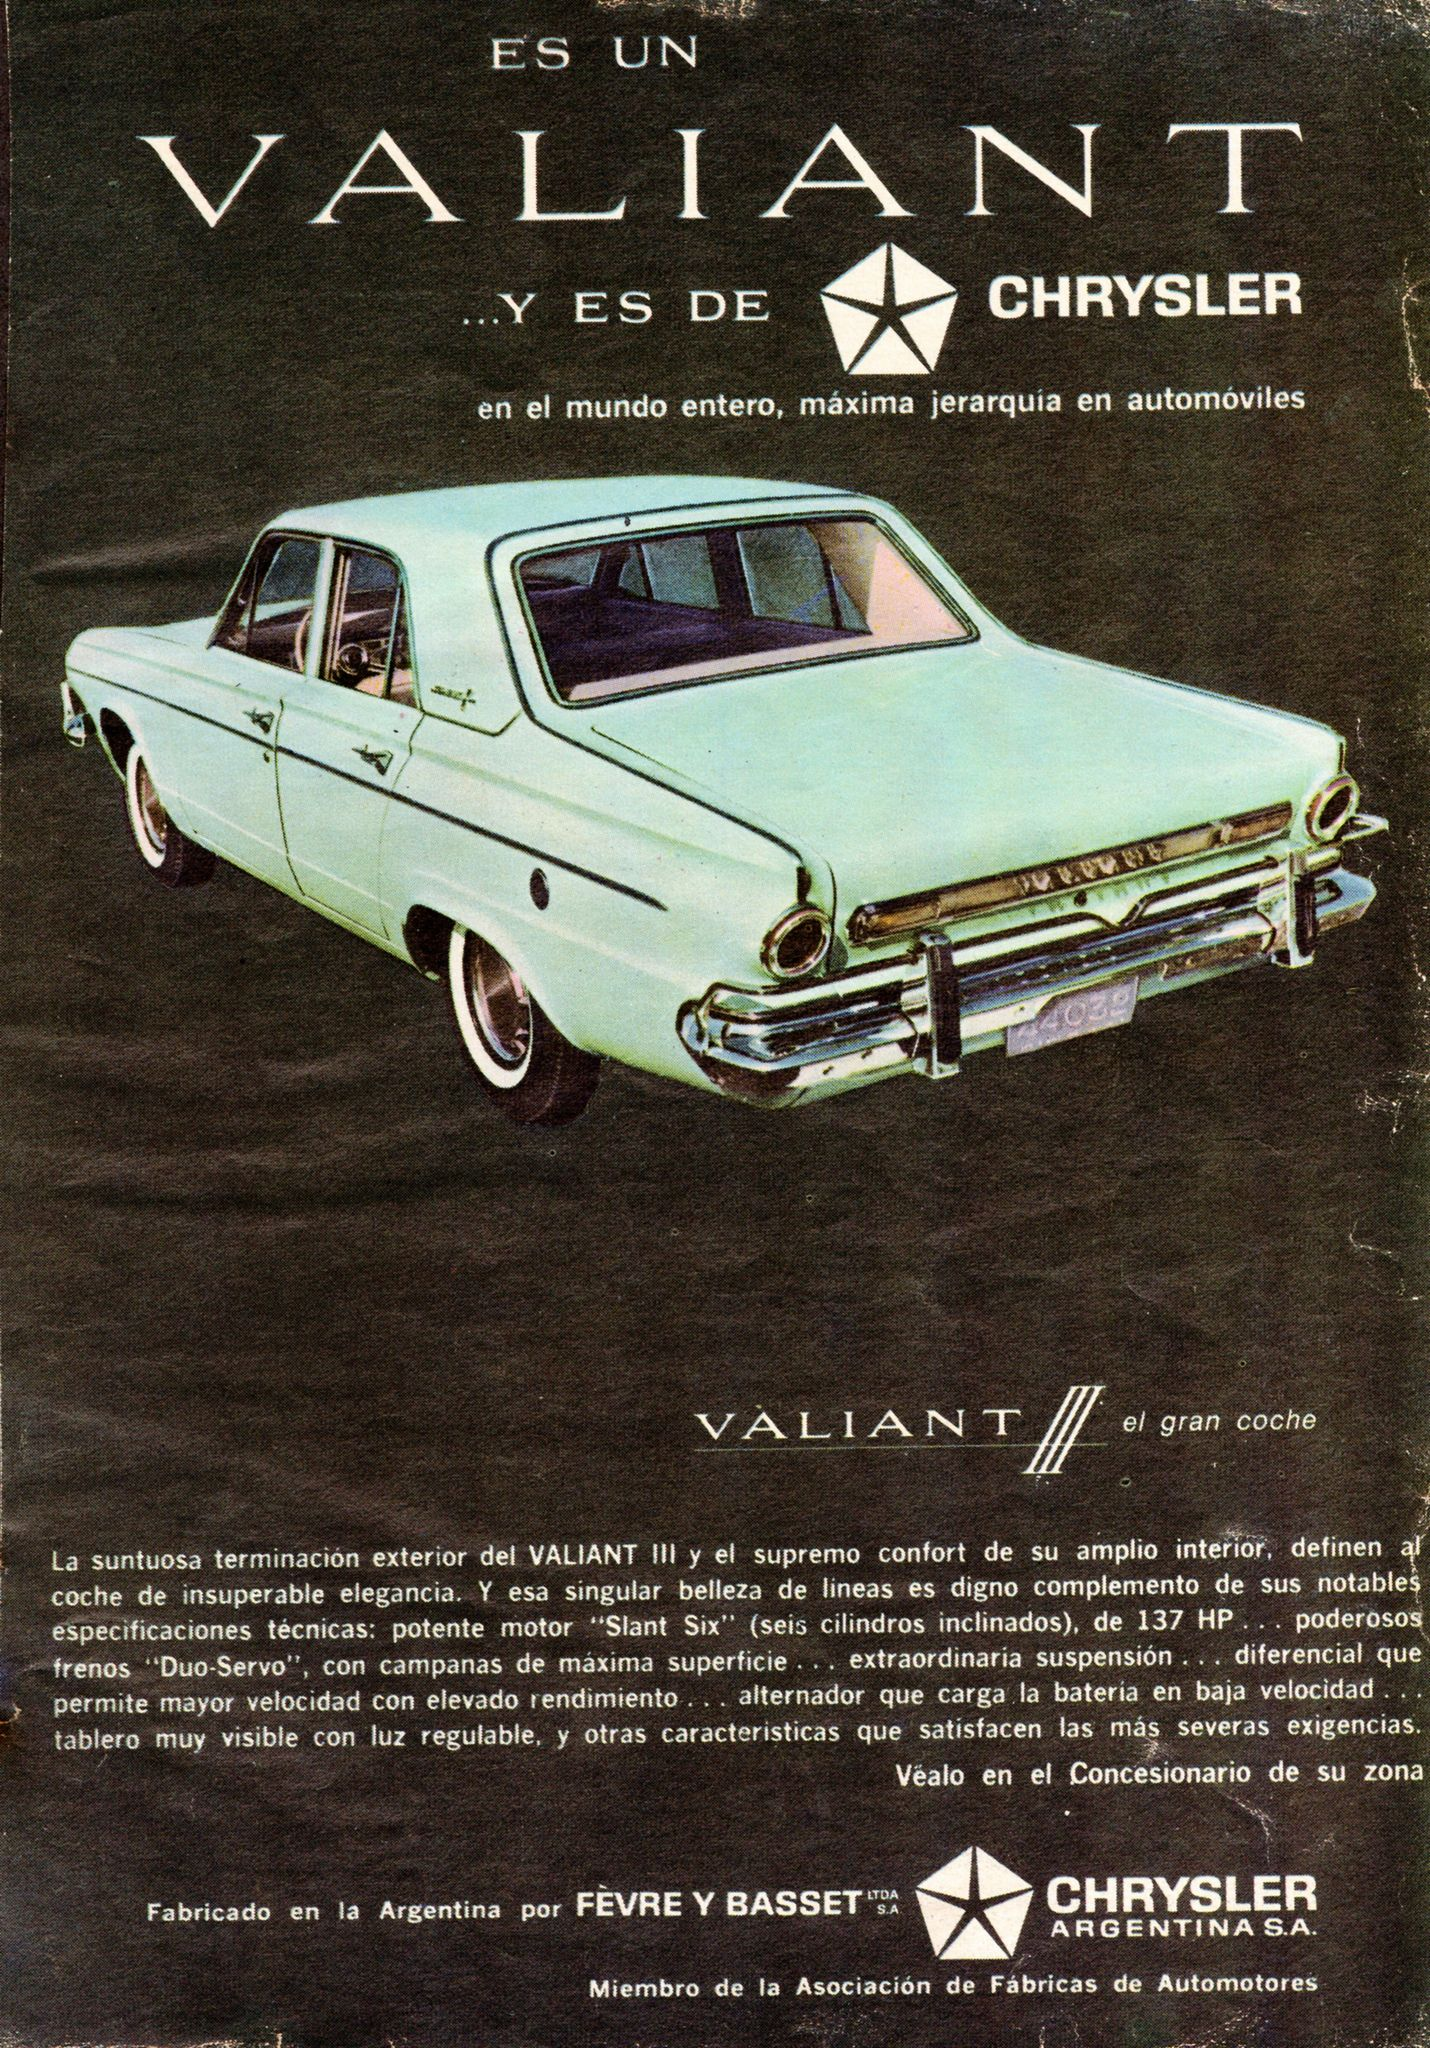 1965 Valiant Iii Ad Argentina Automobile Advertising Car Advertising Vintage Ads